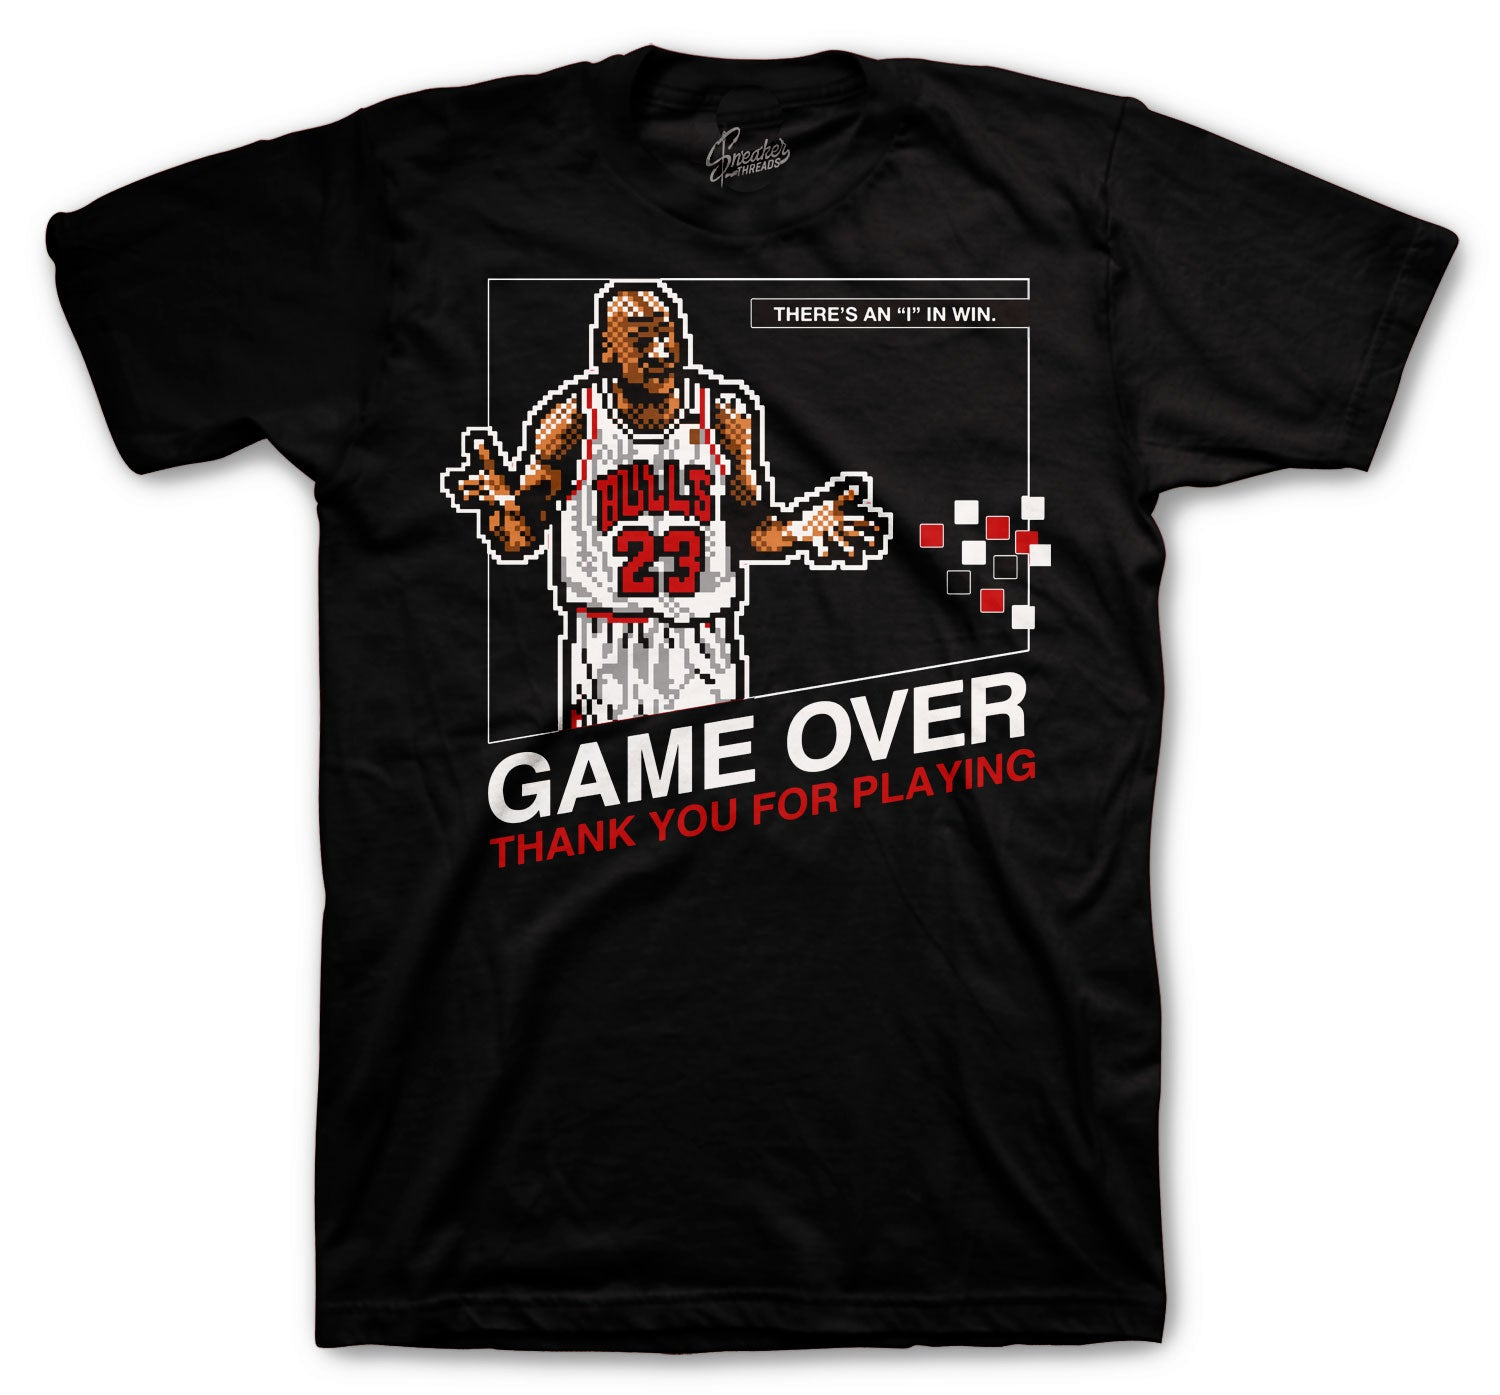 Jordan 1 AJKO Chicago Game Over Shirts